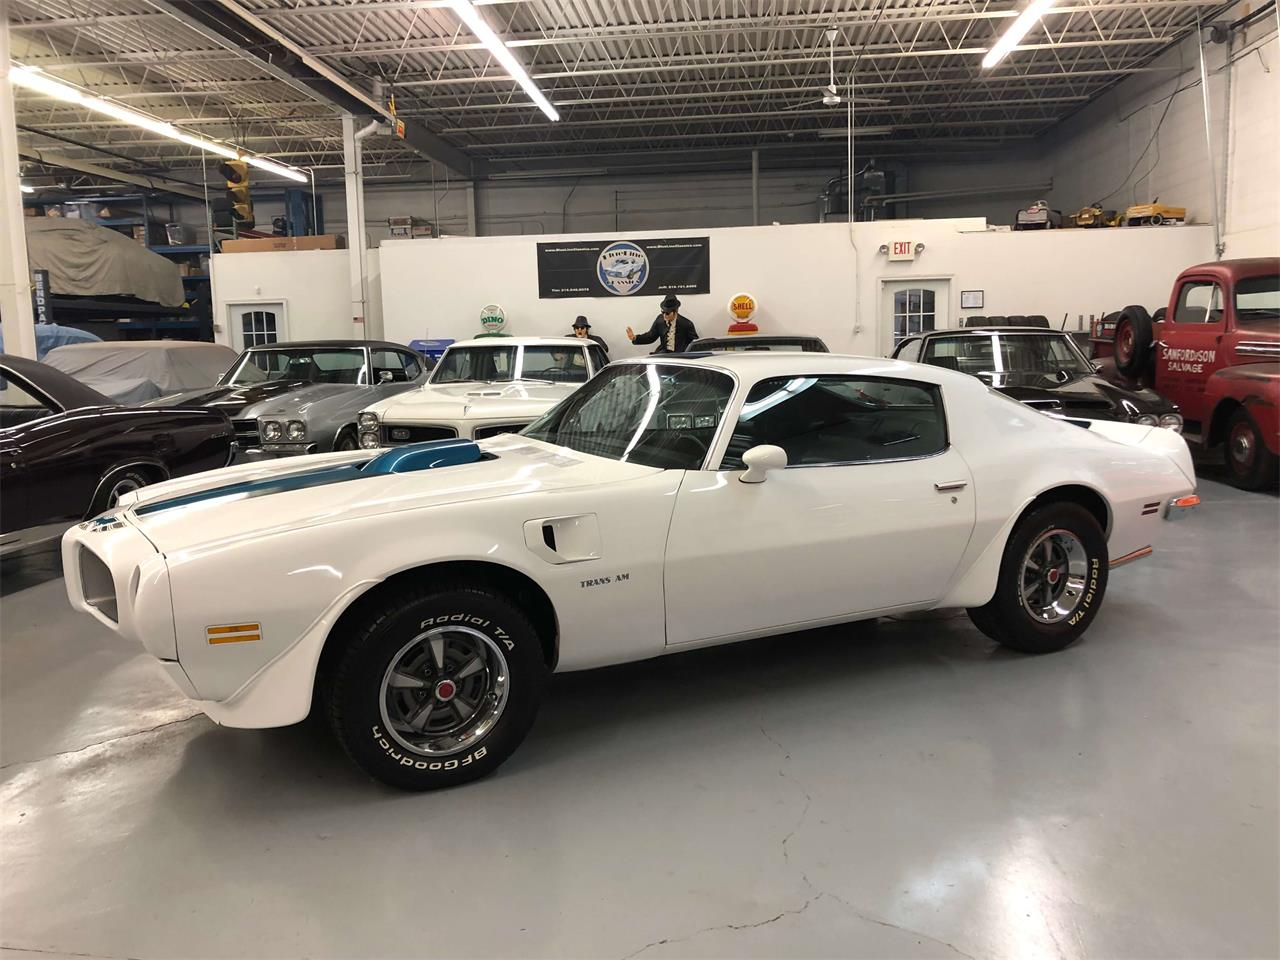 1970 Pontiac Firebird Trans Am for sale in North Royalton, OH – photo 4